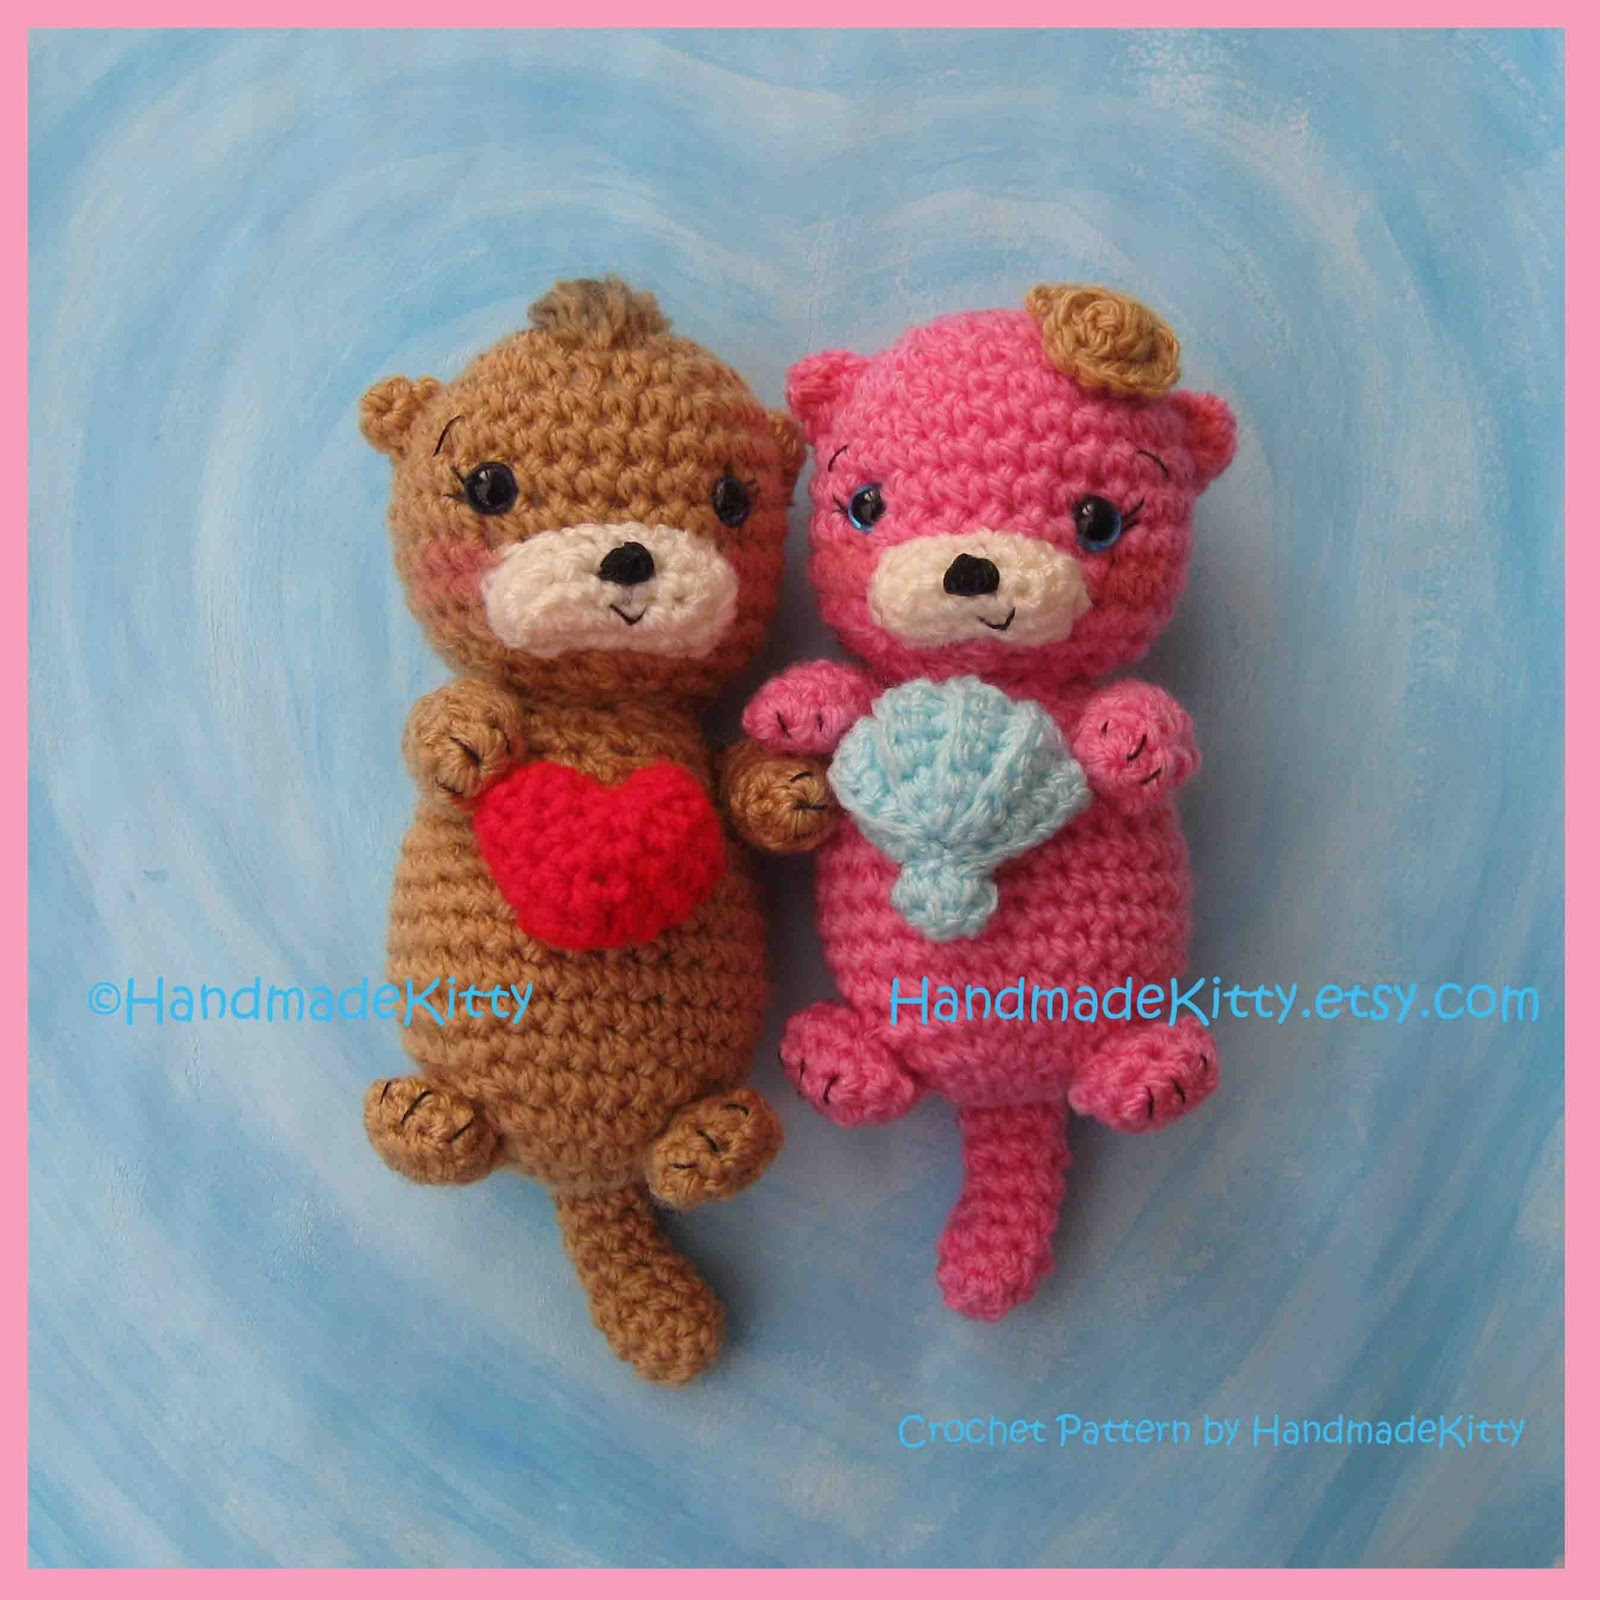 HandmadeKitty: Otter Couple Floating in Love Amigurumi Crochet ...